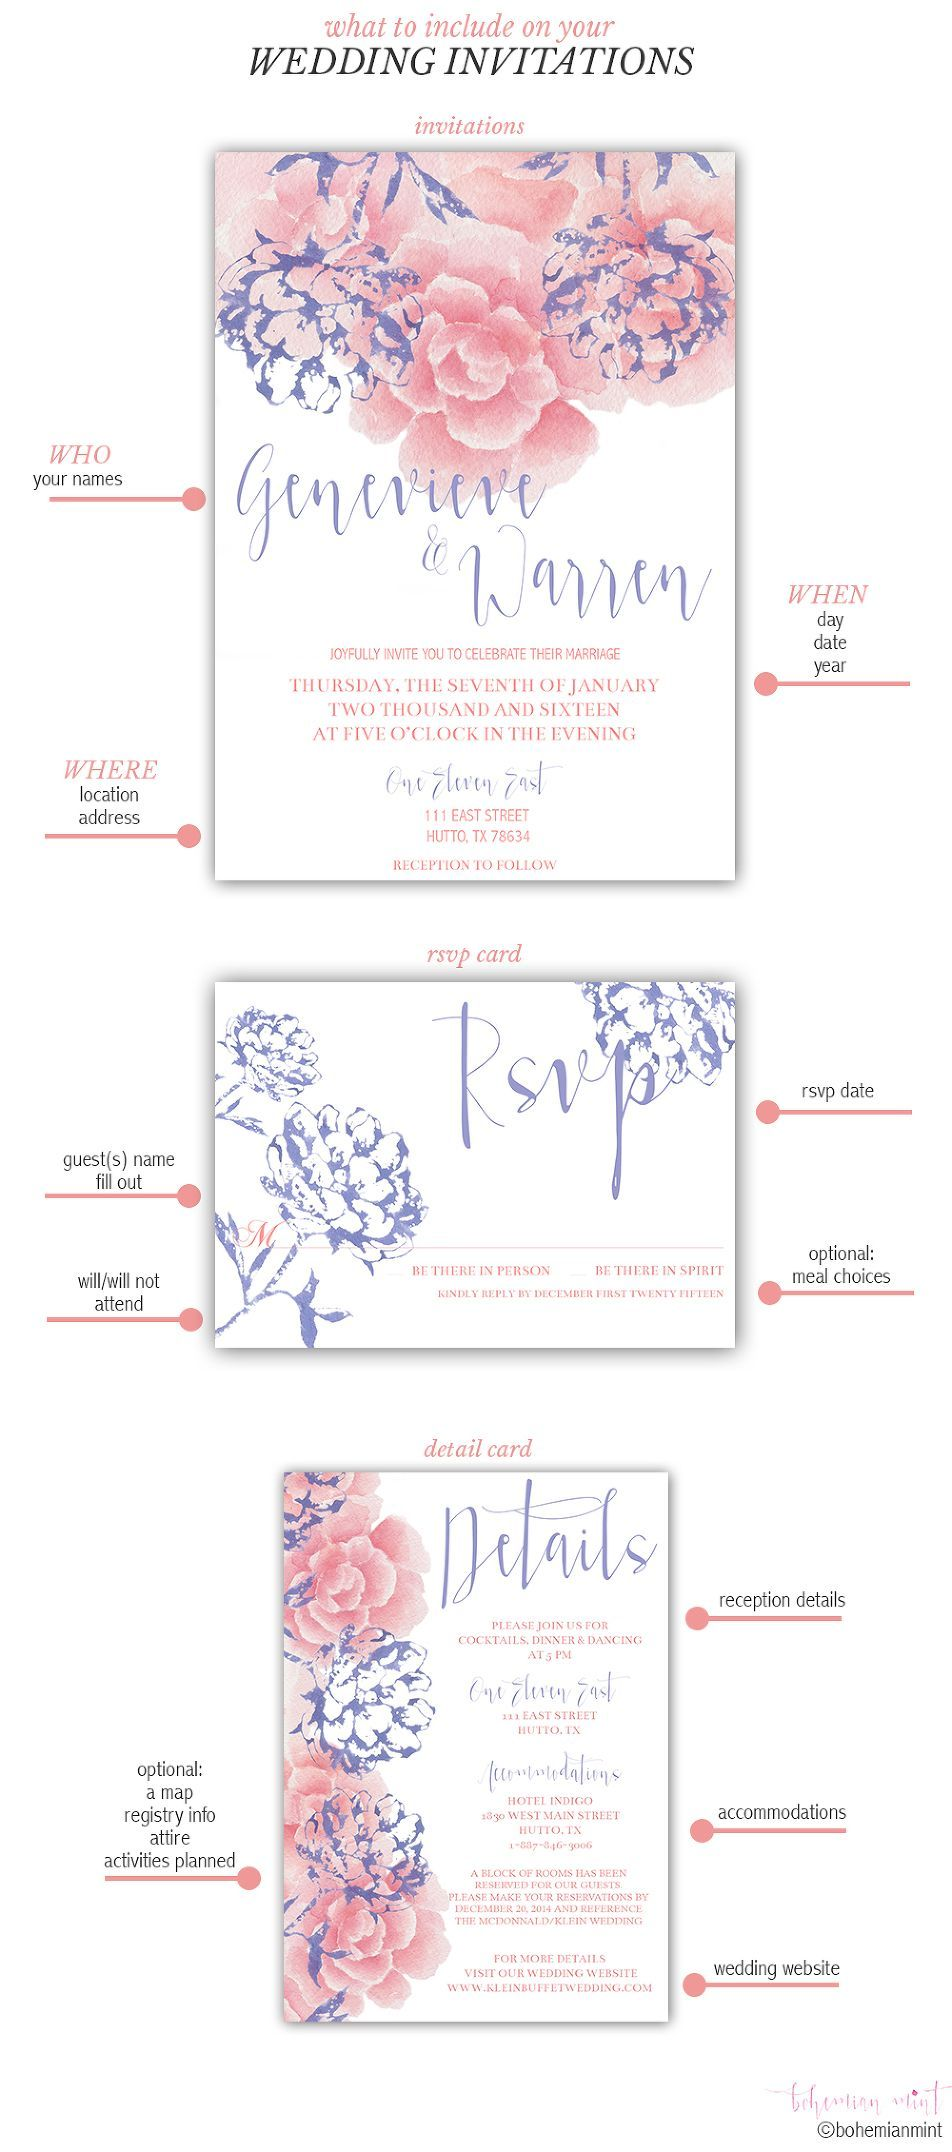 what to include on your wedding invitations-watercolor-invitations ...